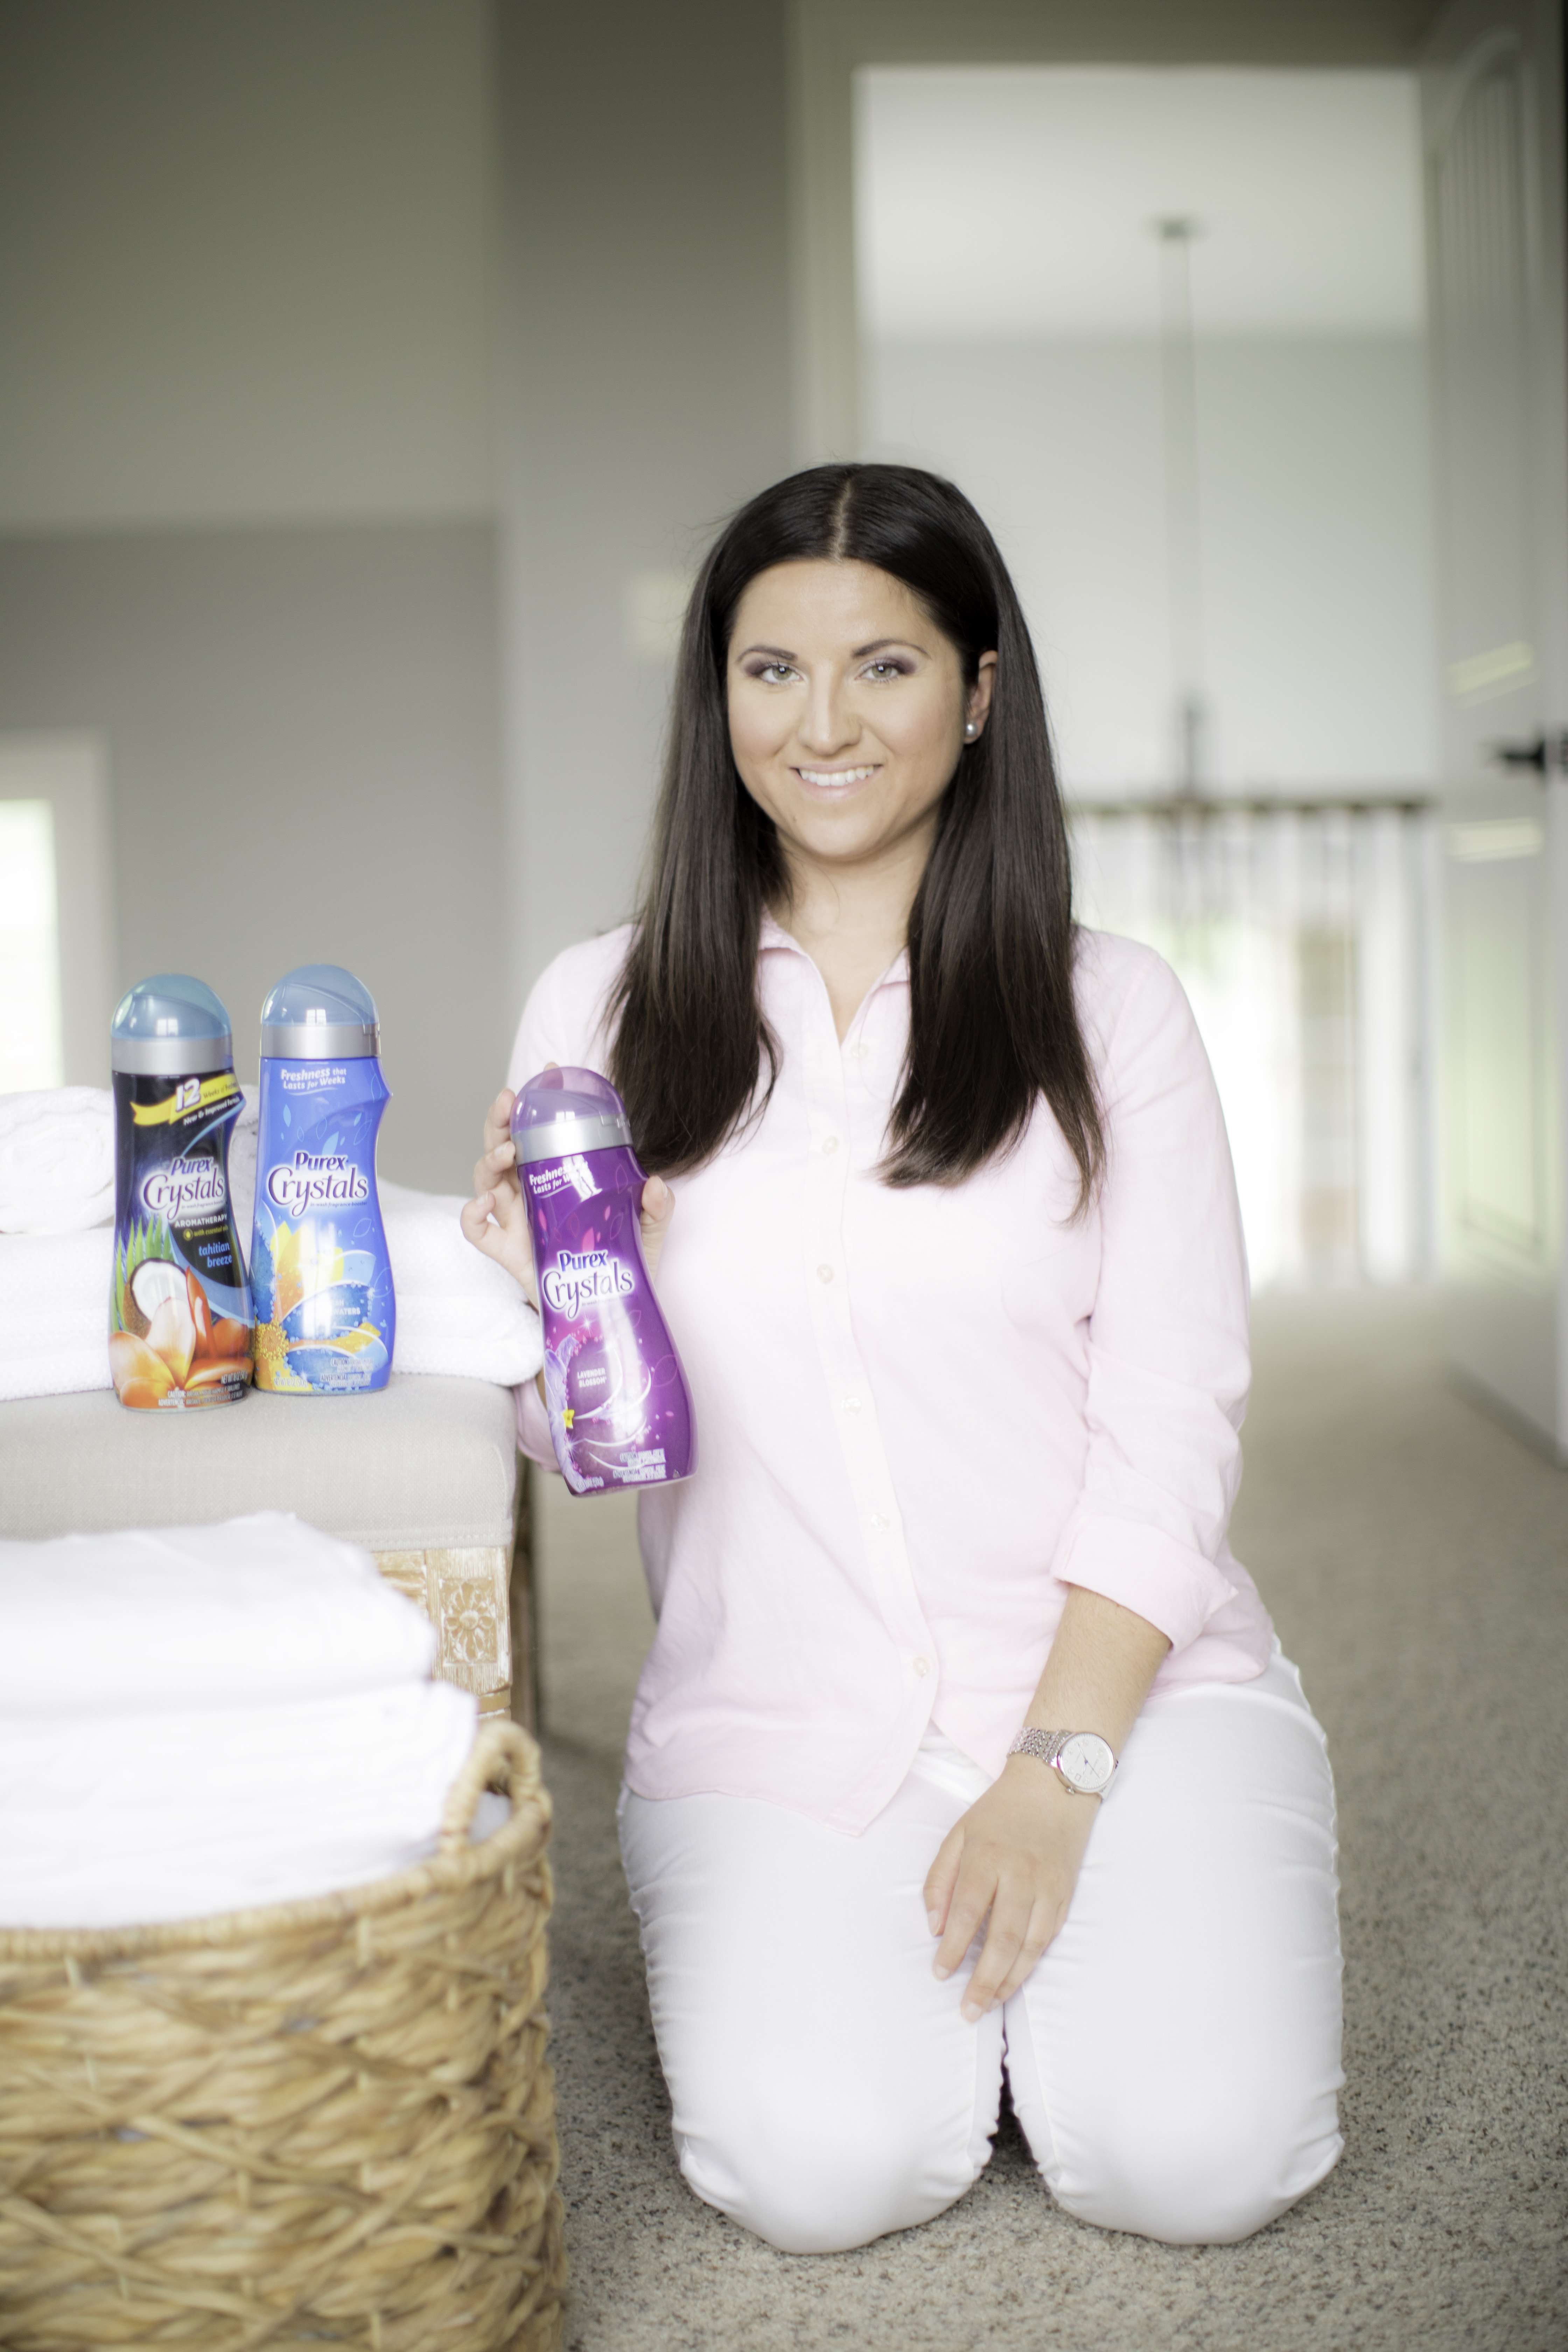 how to transform your bedroom into a calm sanctuary, purex, Purex Crystal Fresh, collective bias campaign, ad